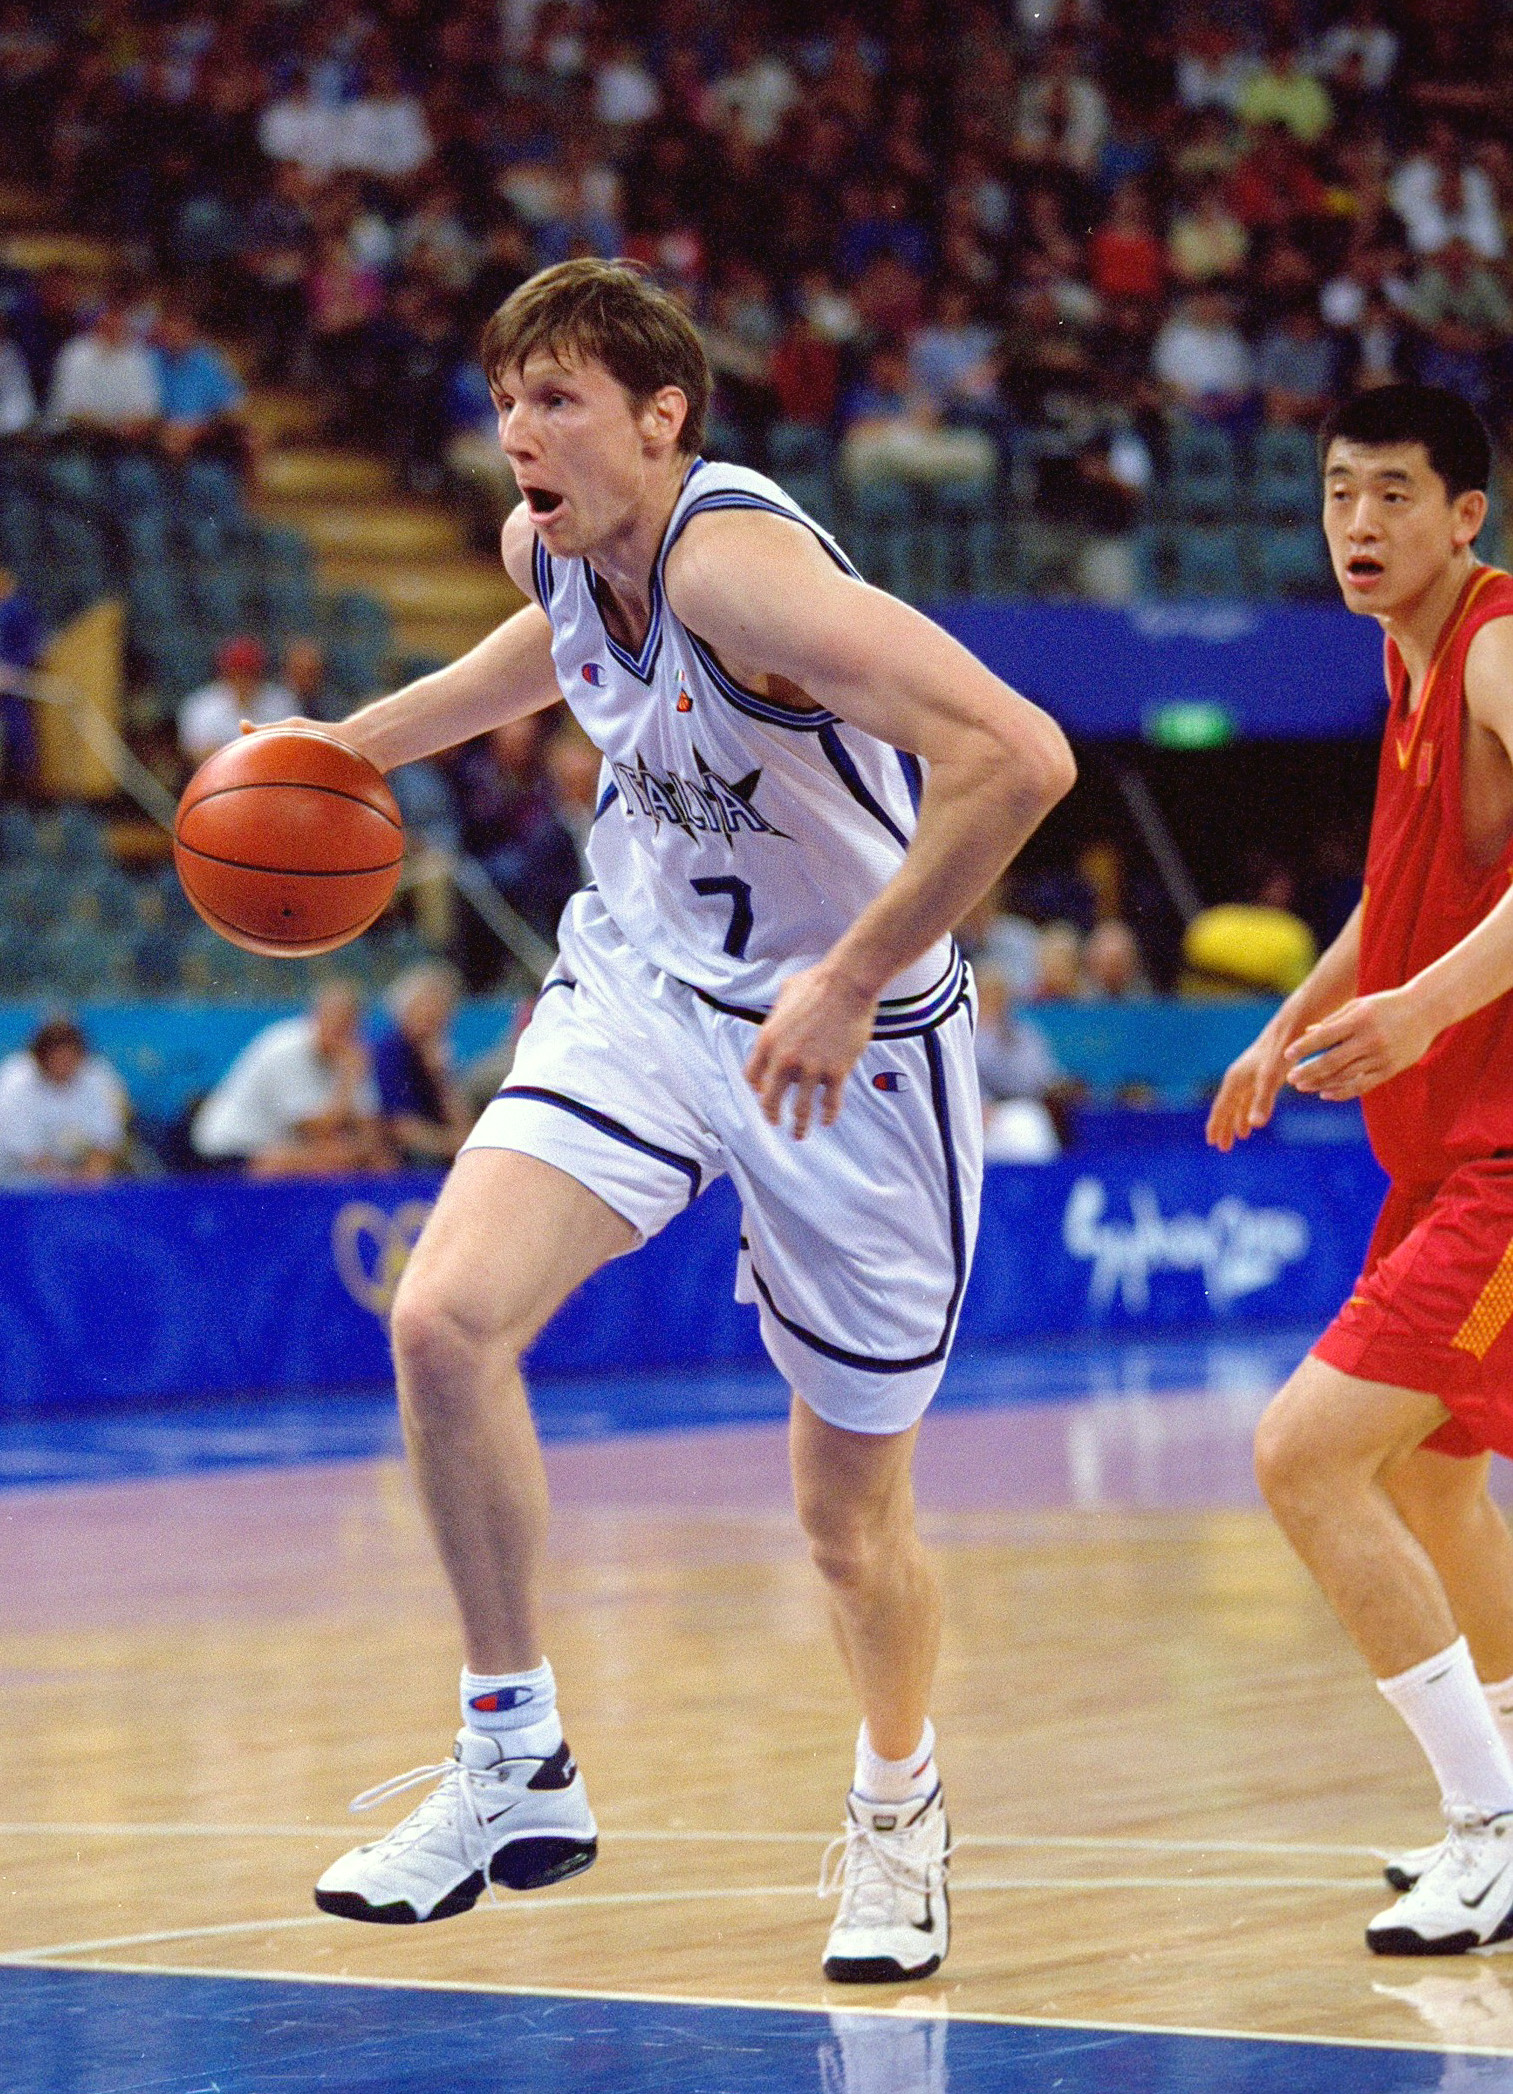 25 Sep 2000:  Gregor Fucka of Italy in action during the Mens Basketball at the Sydney Showground Dome on Day Ten of the Sydney 2000 Olympic Games in Sydney, Australia. \ Mandatory Credit: Darren McNamara /Allsport